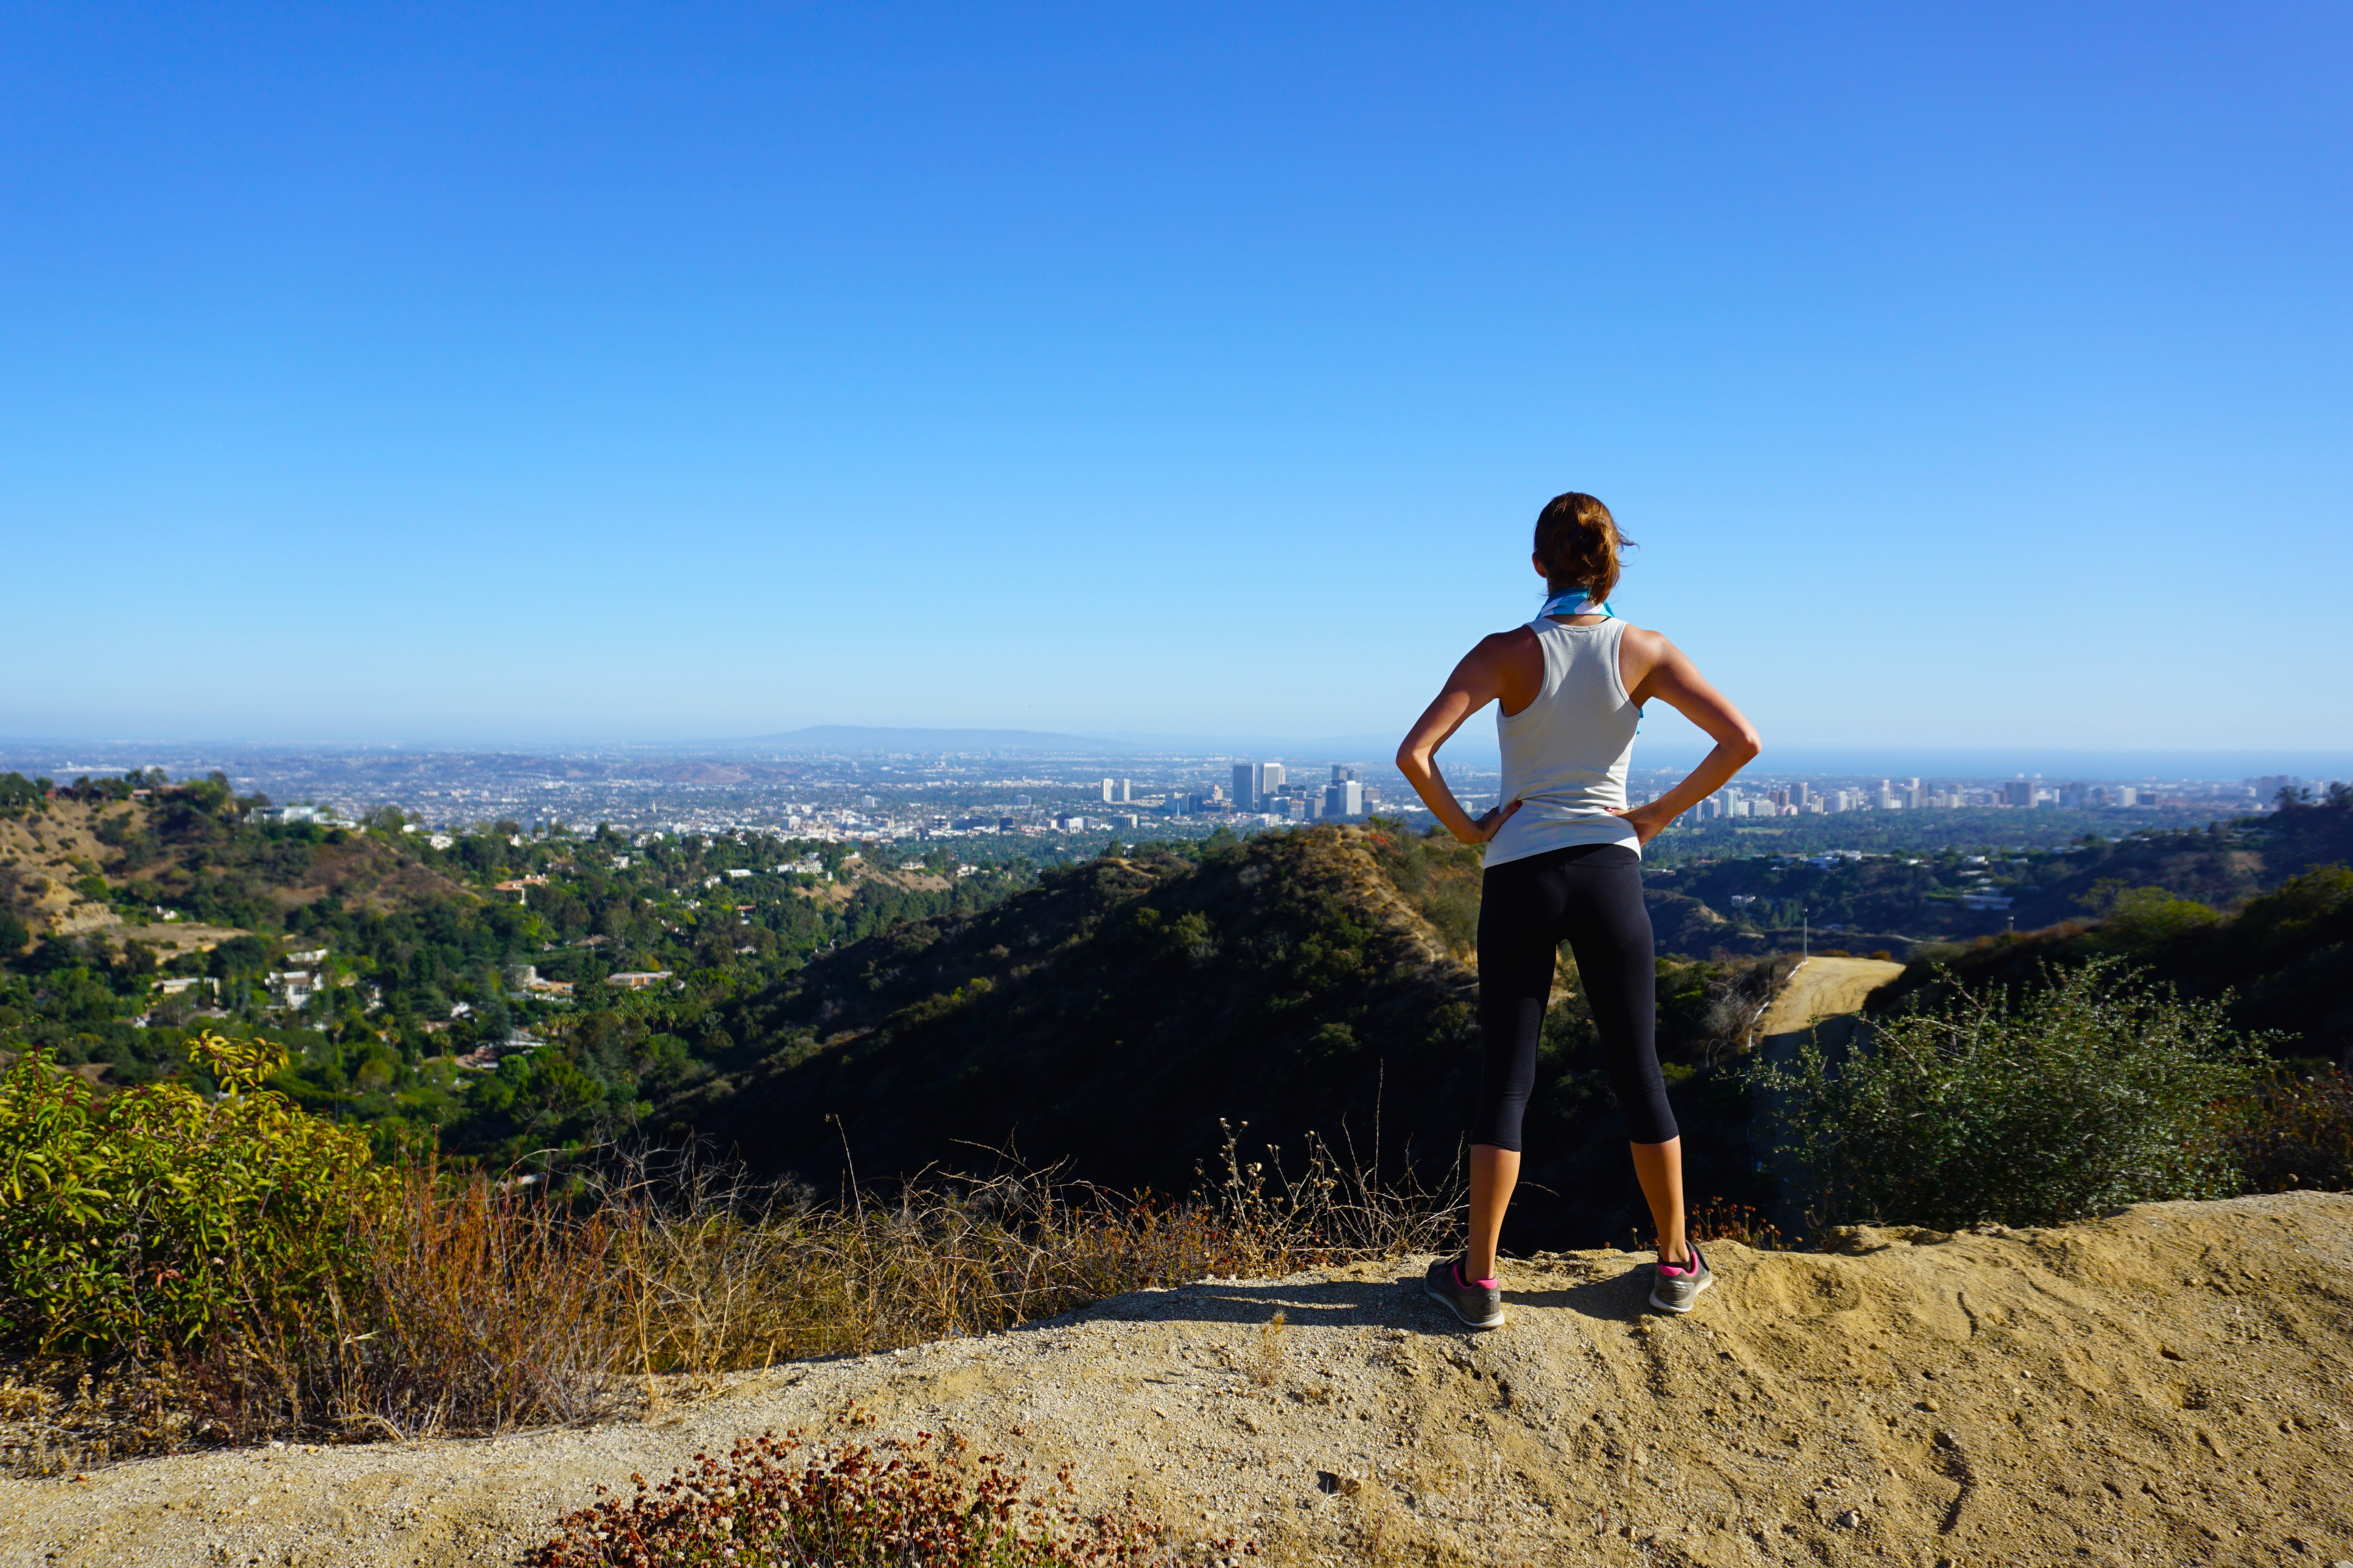 Hiking trail in Franklin Canyon, Beverly Hills (Thinkstock/PA)